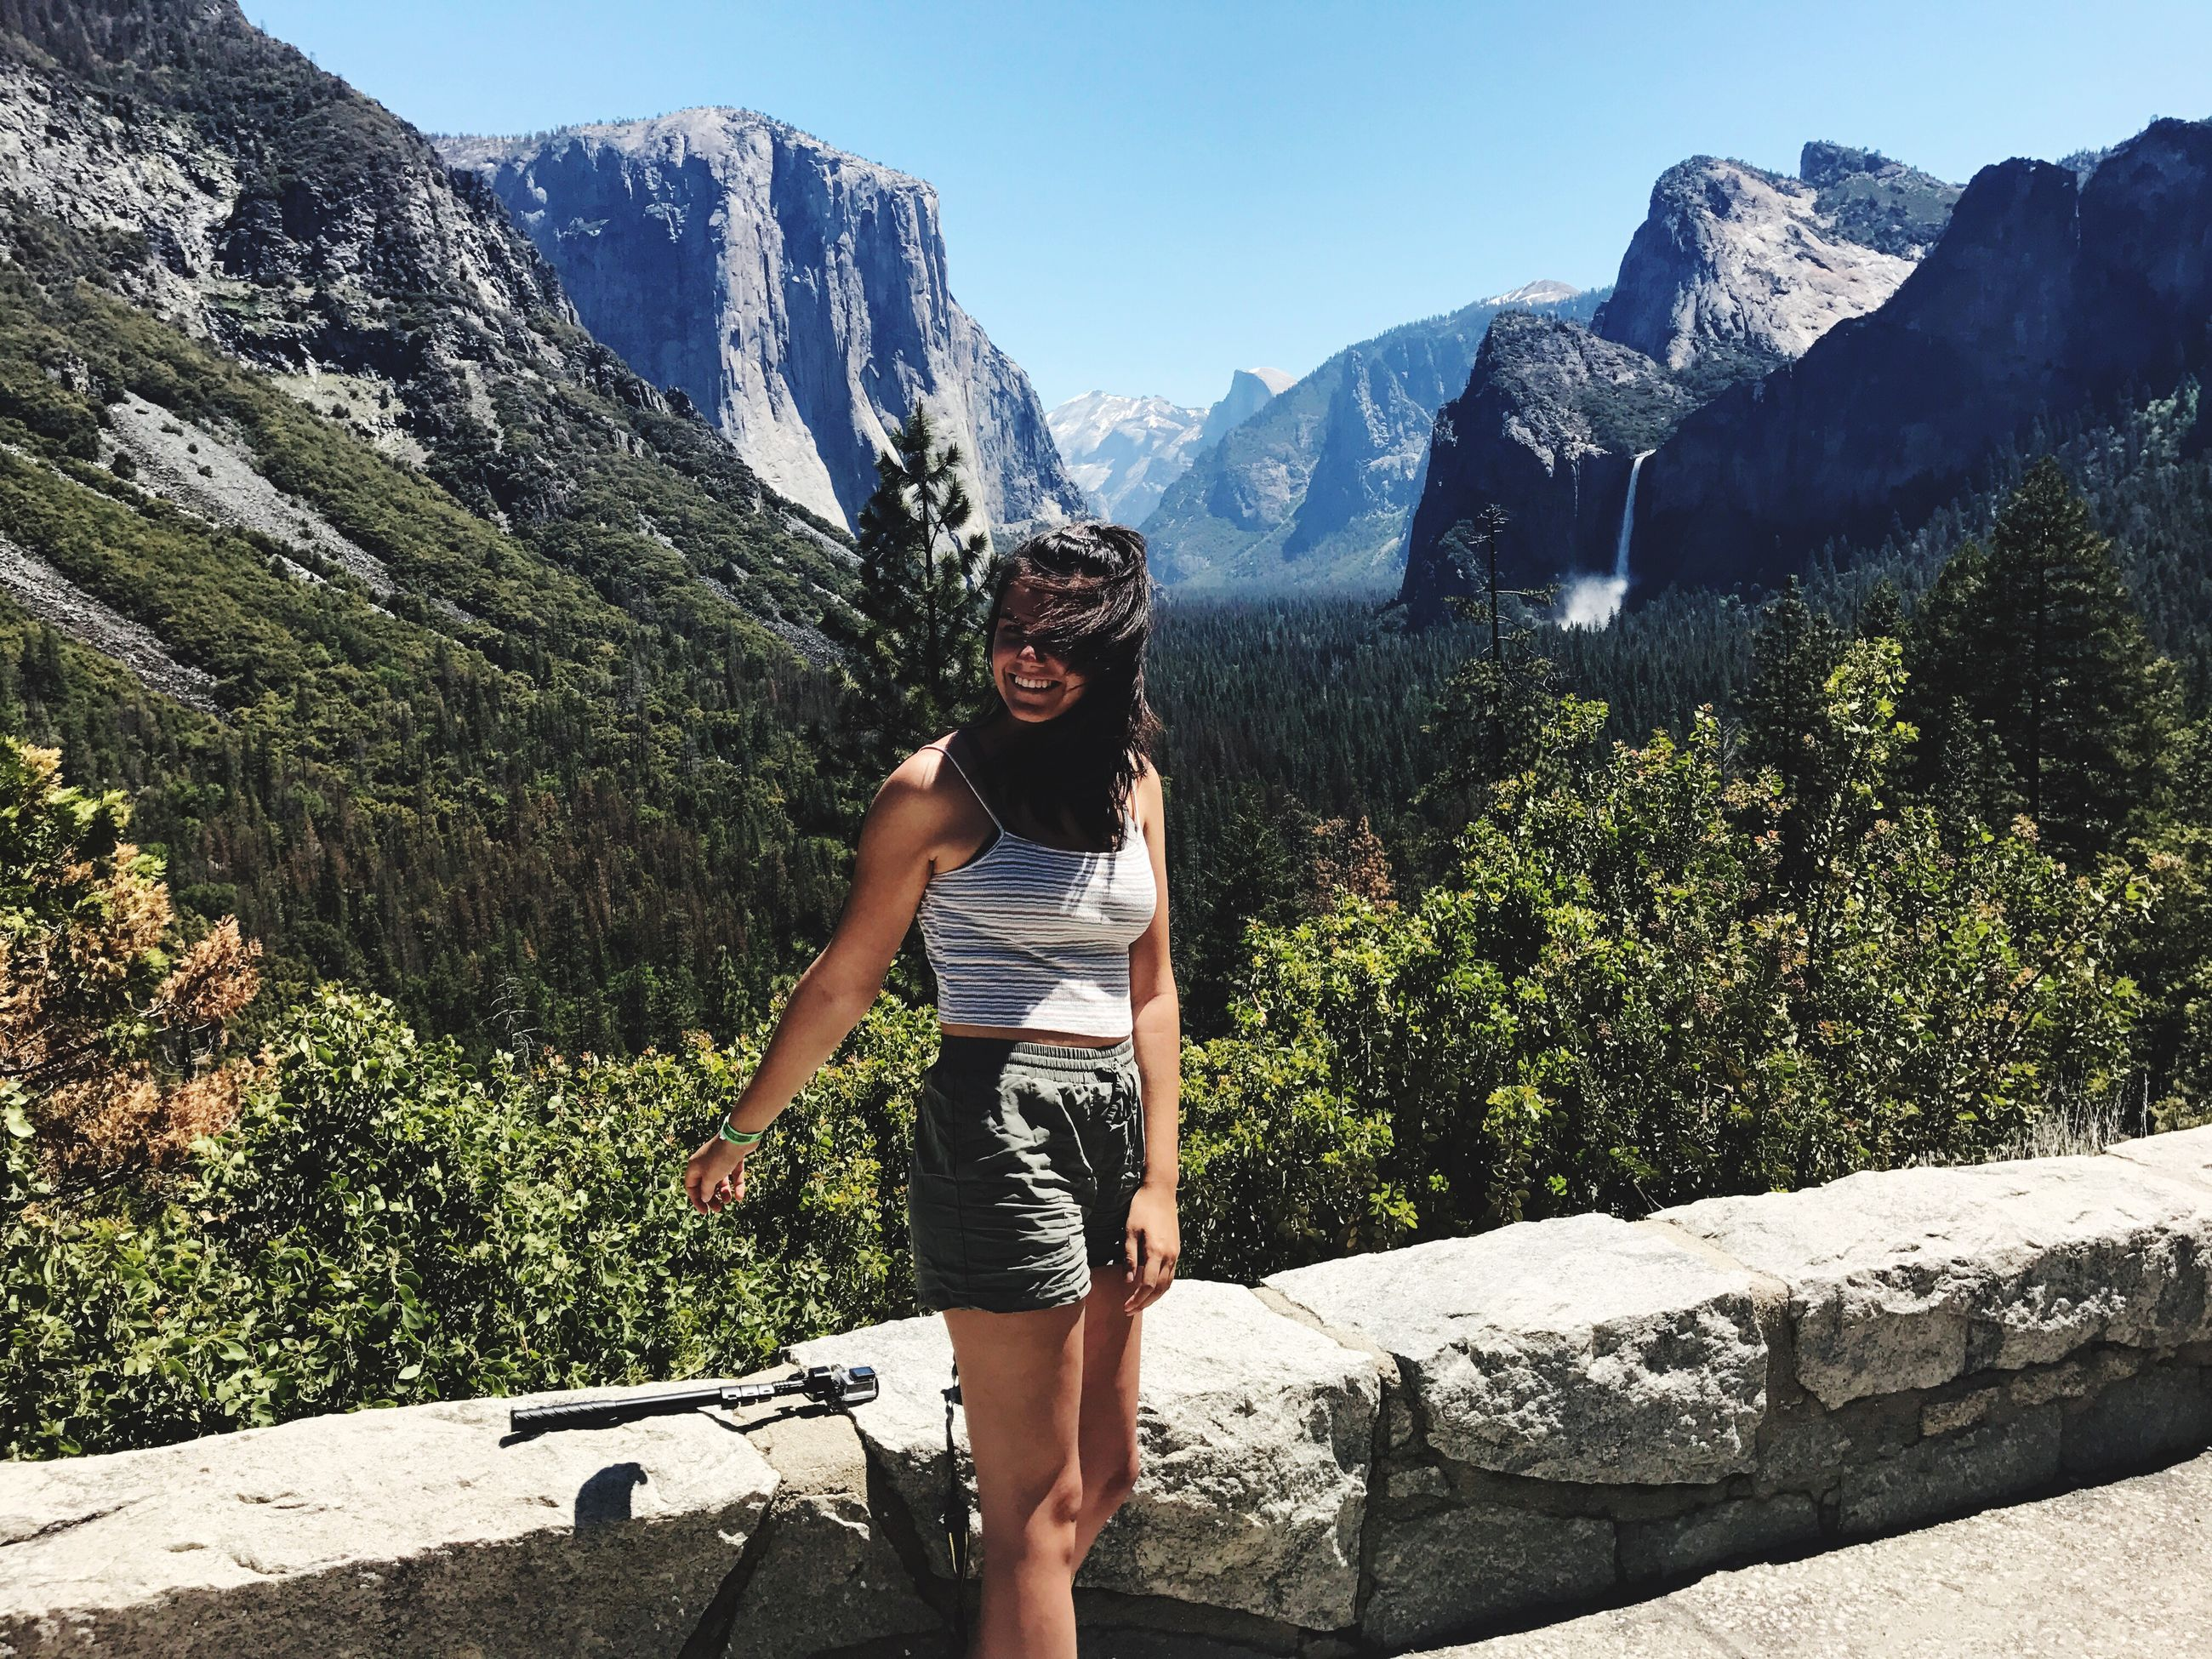 real people, leisure activity, young adult, mountain, lifestyles, young women, casual clothing, nature, front view, one person, rock - object, standing, beauty in nature, outdoors, day, full length, tree, hot pants, happiness, sunlight, beautiful woman, scenics, looking at camera, smiling, sky, clear sky